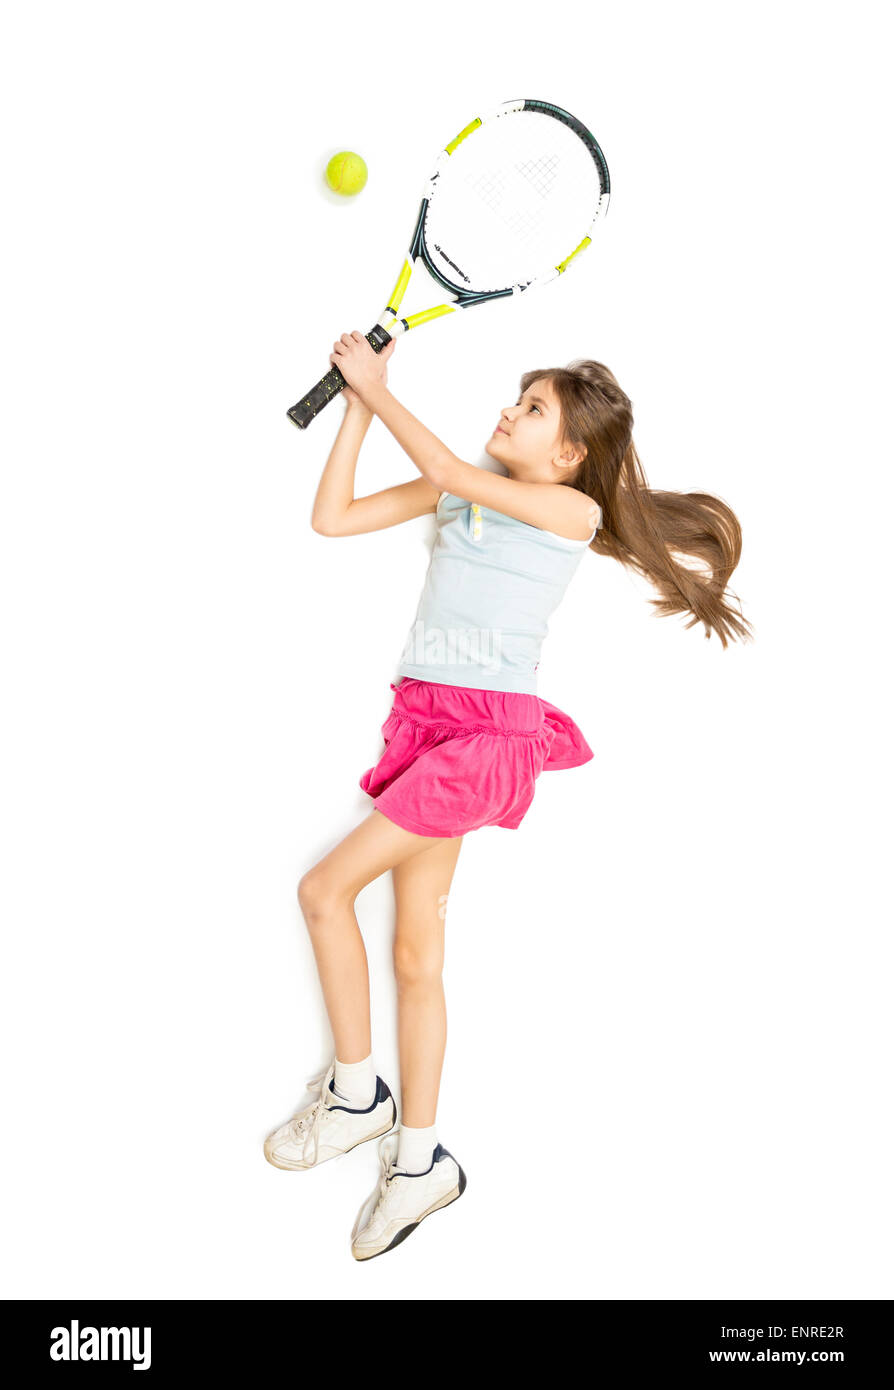 Isolated photo of happy brunette girl playing tennis - Stock Image